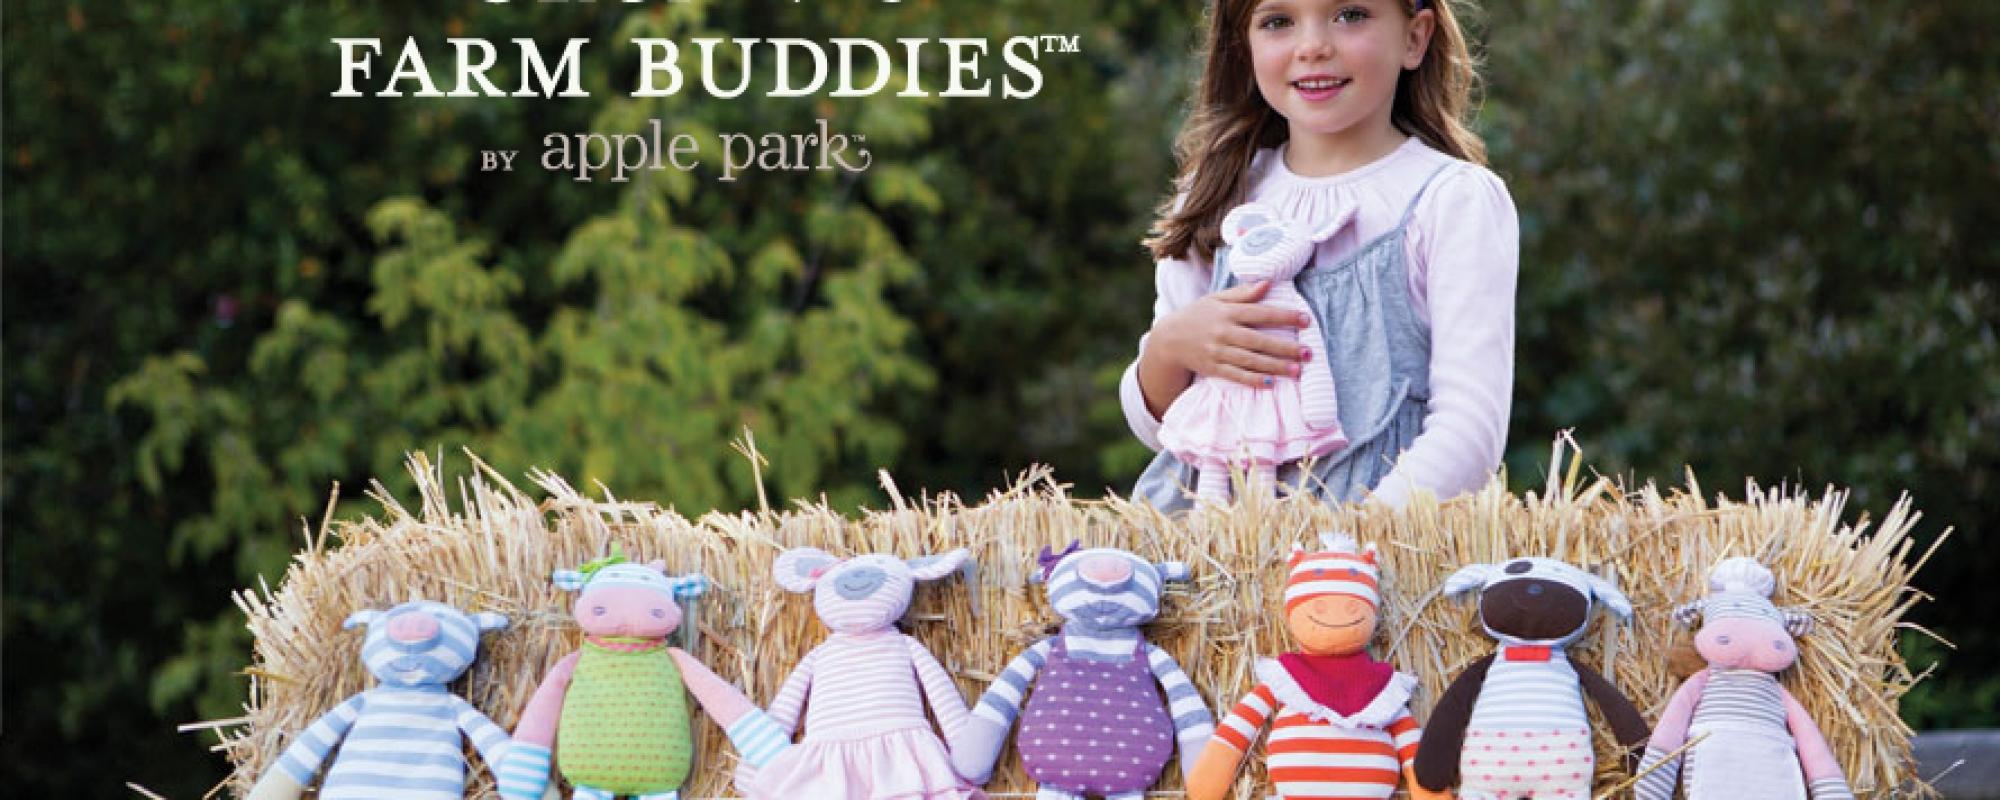 Organic Farm Buddies by Apple Park